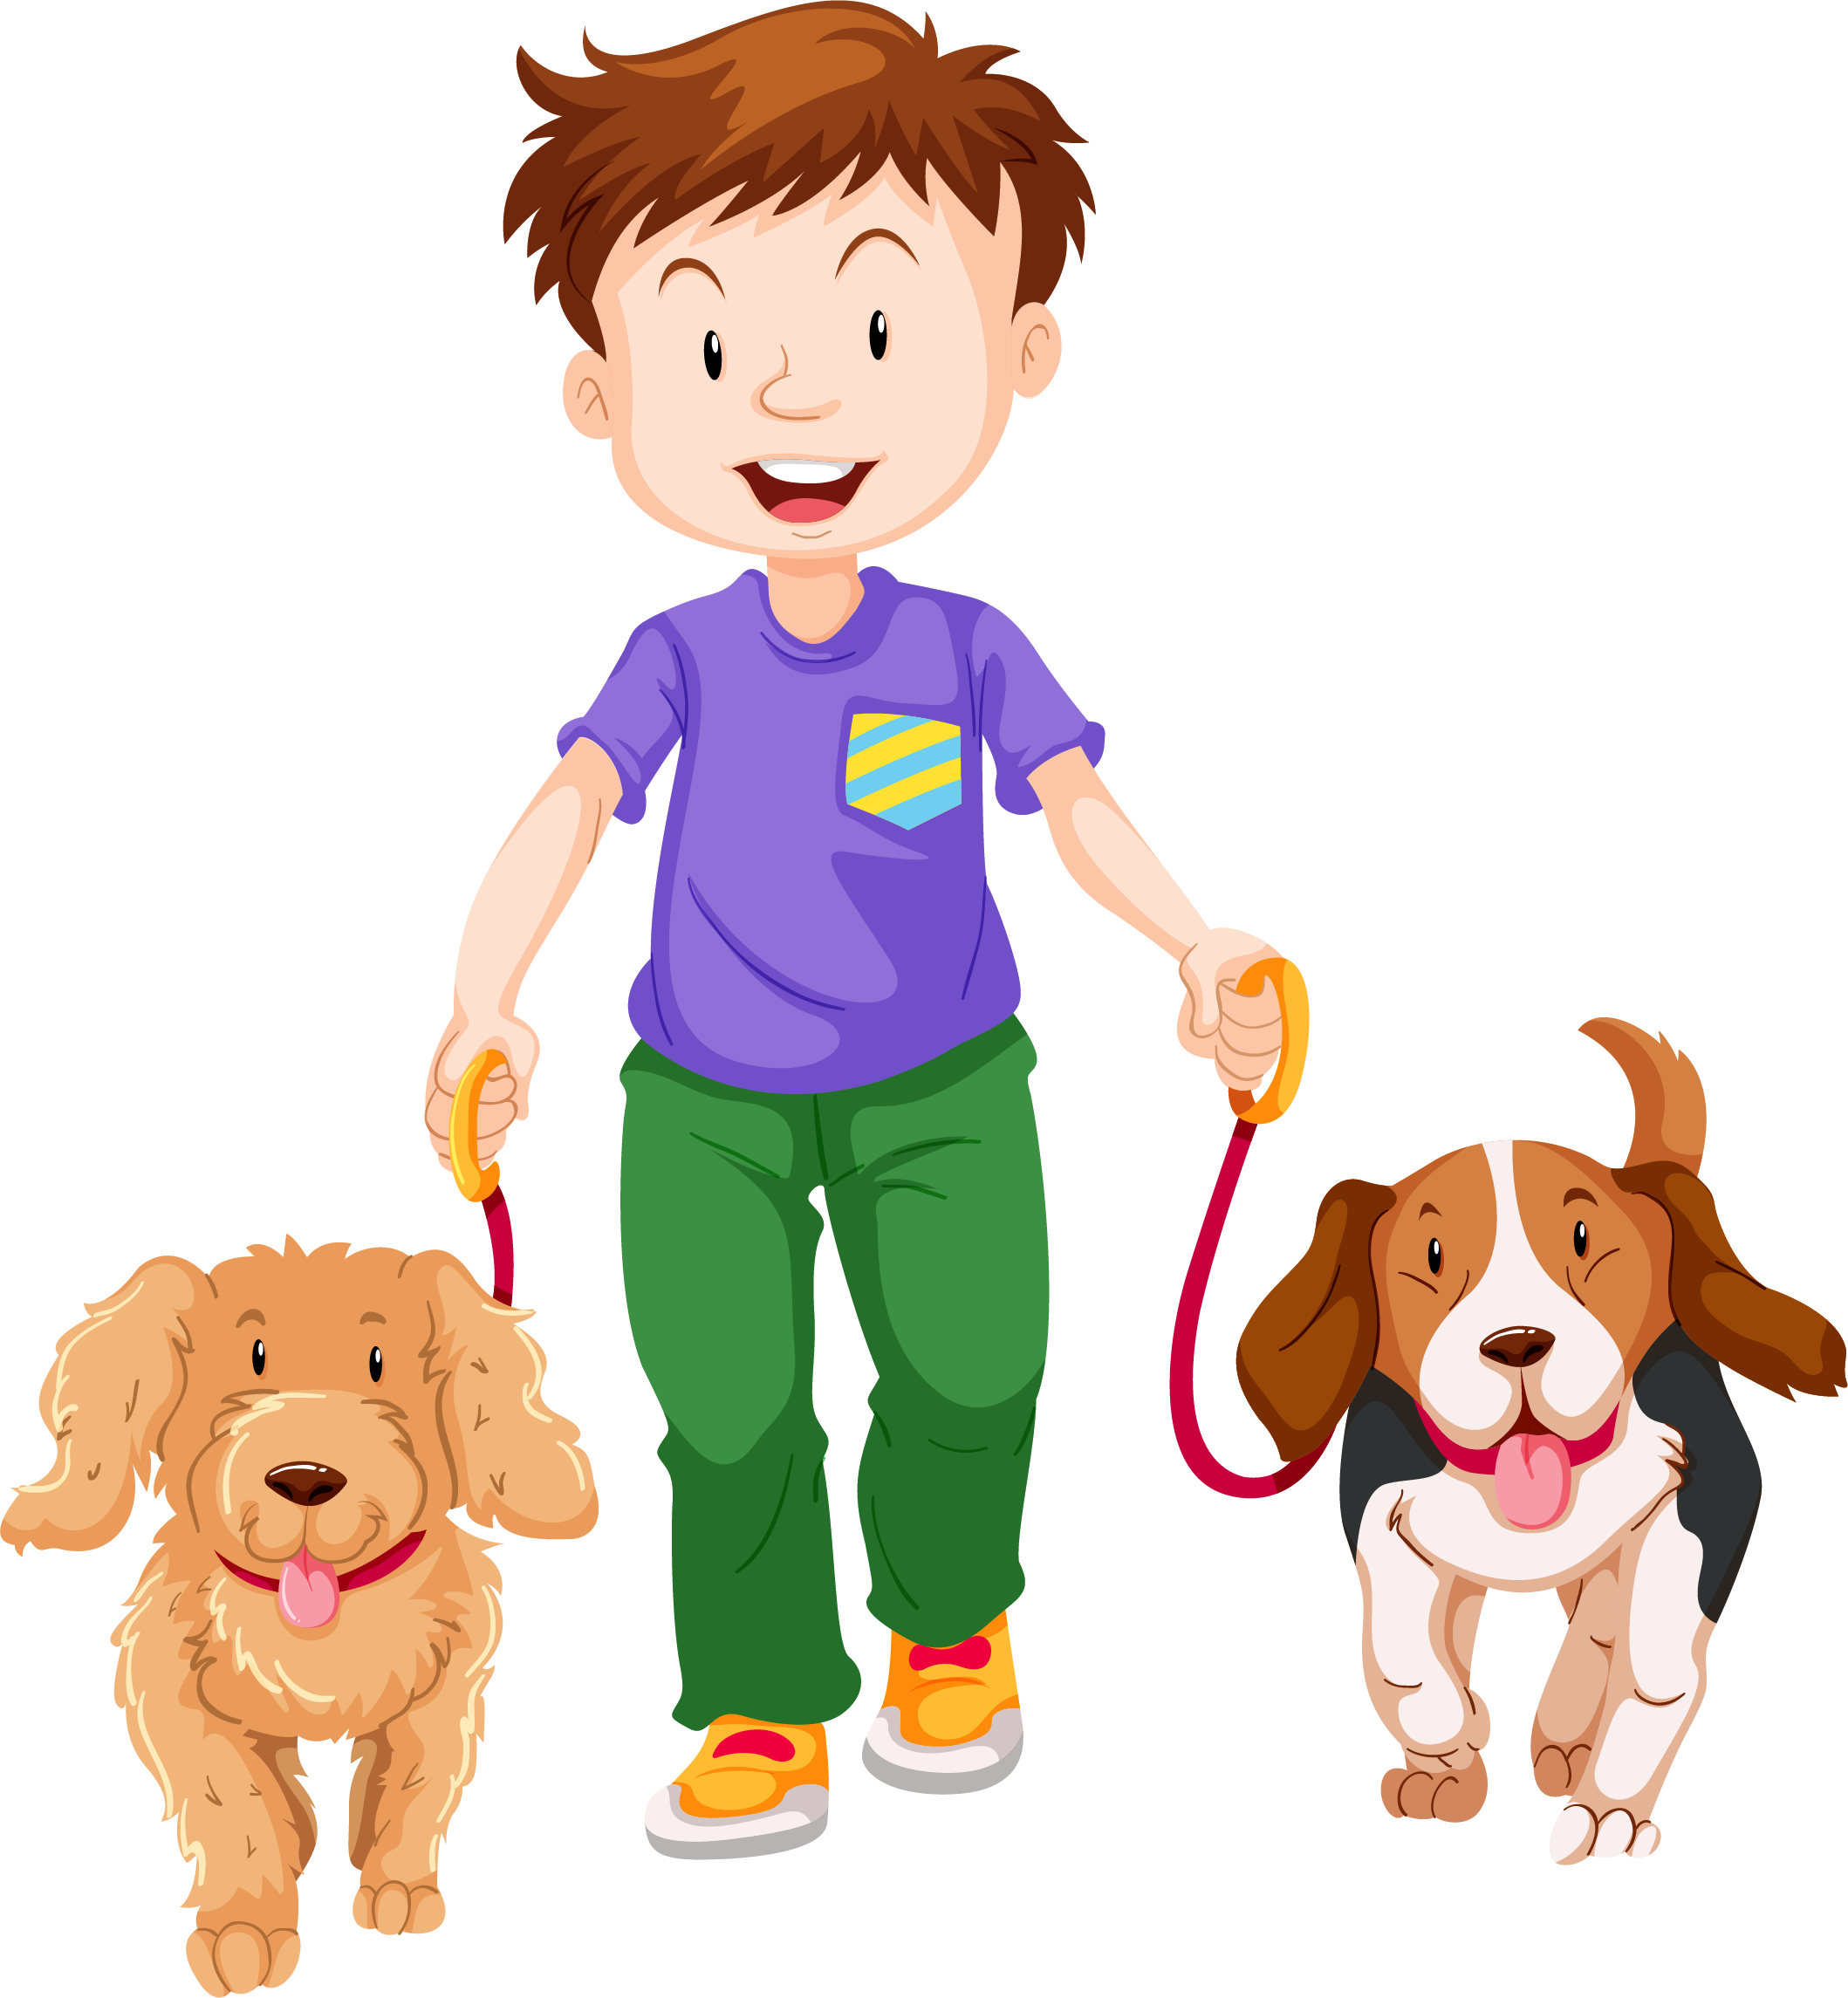 Pet clipart boy dog. Walking clip art cartoon